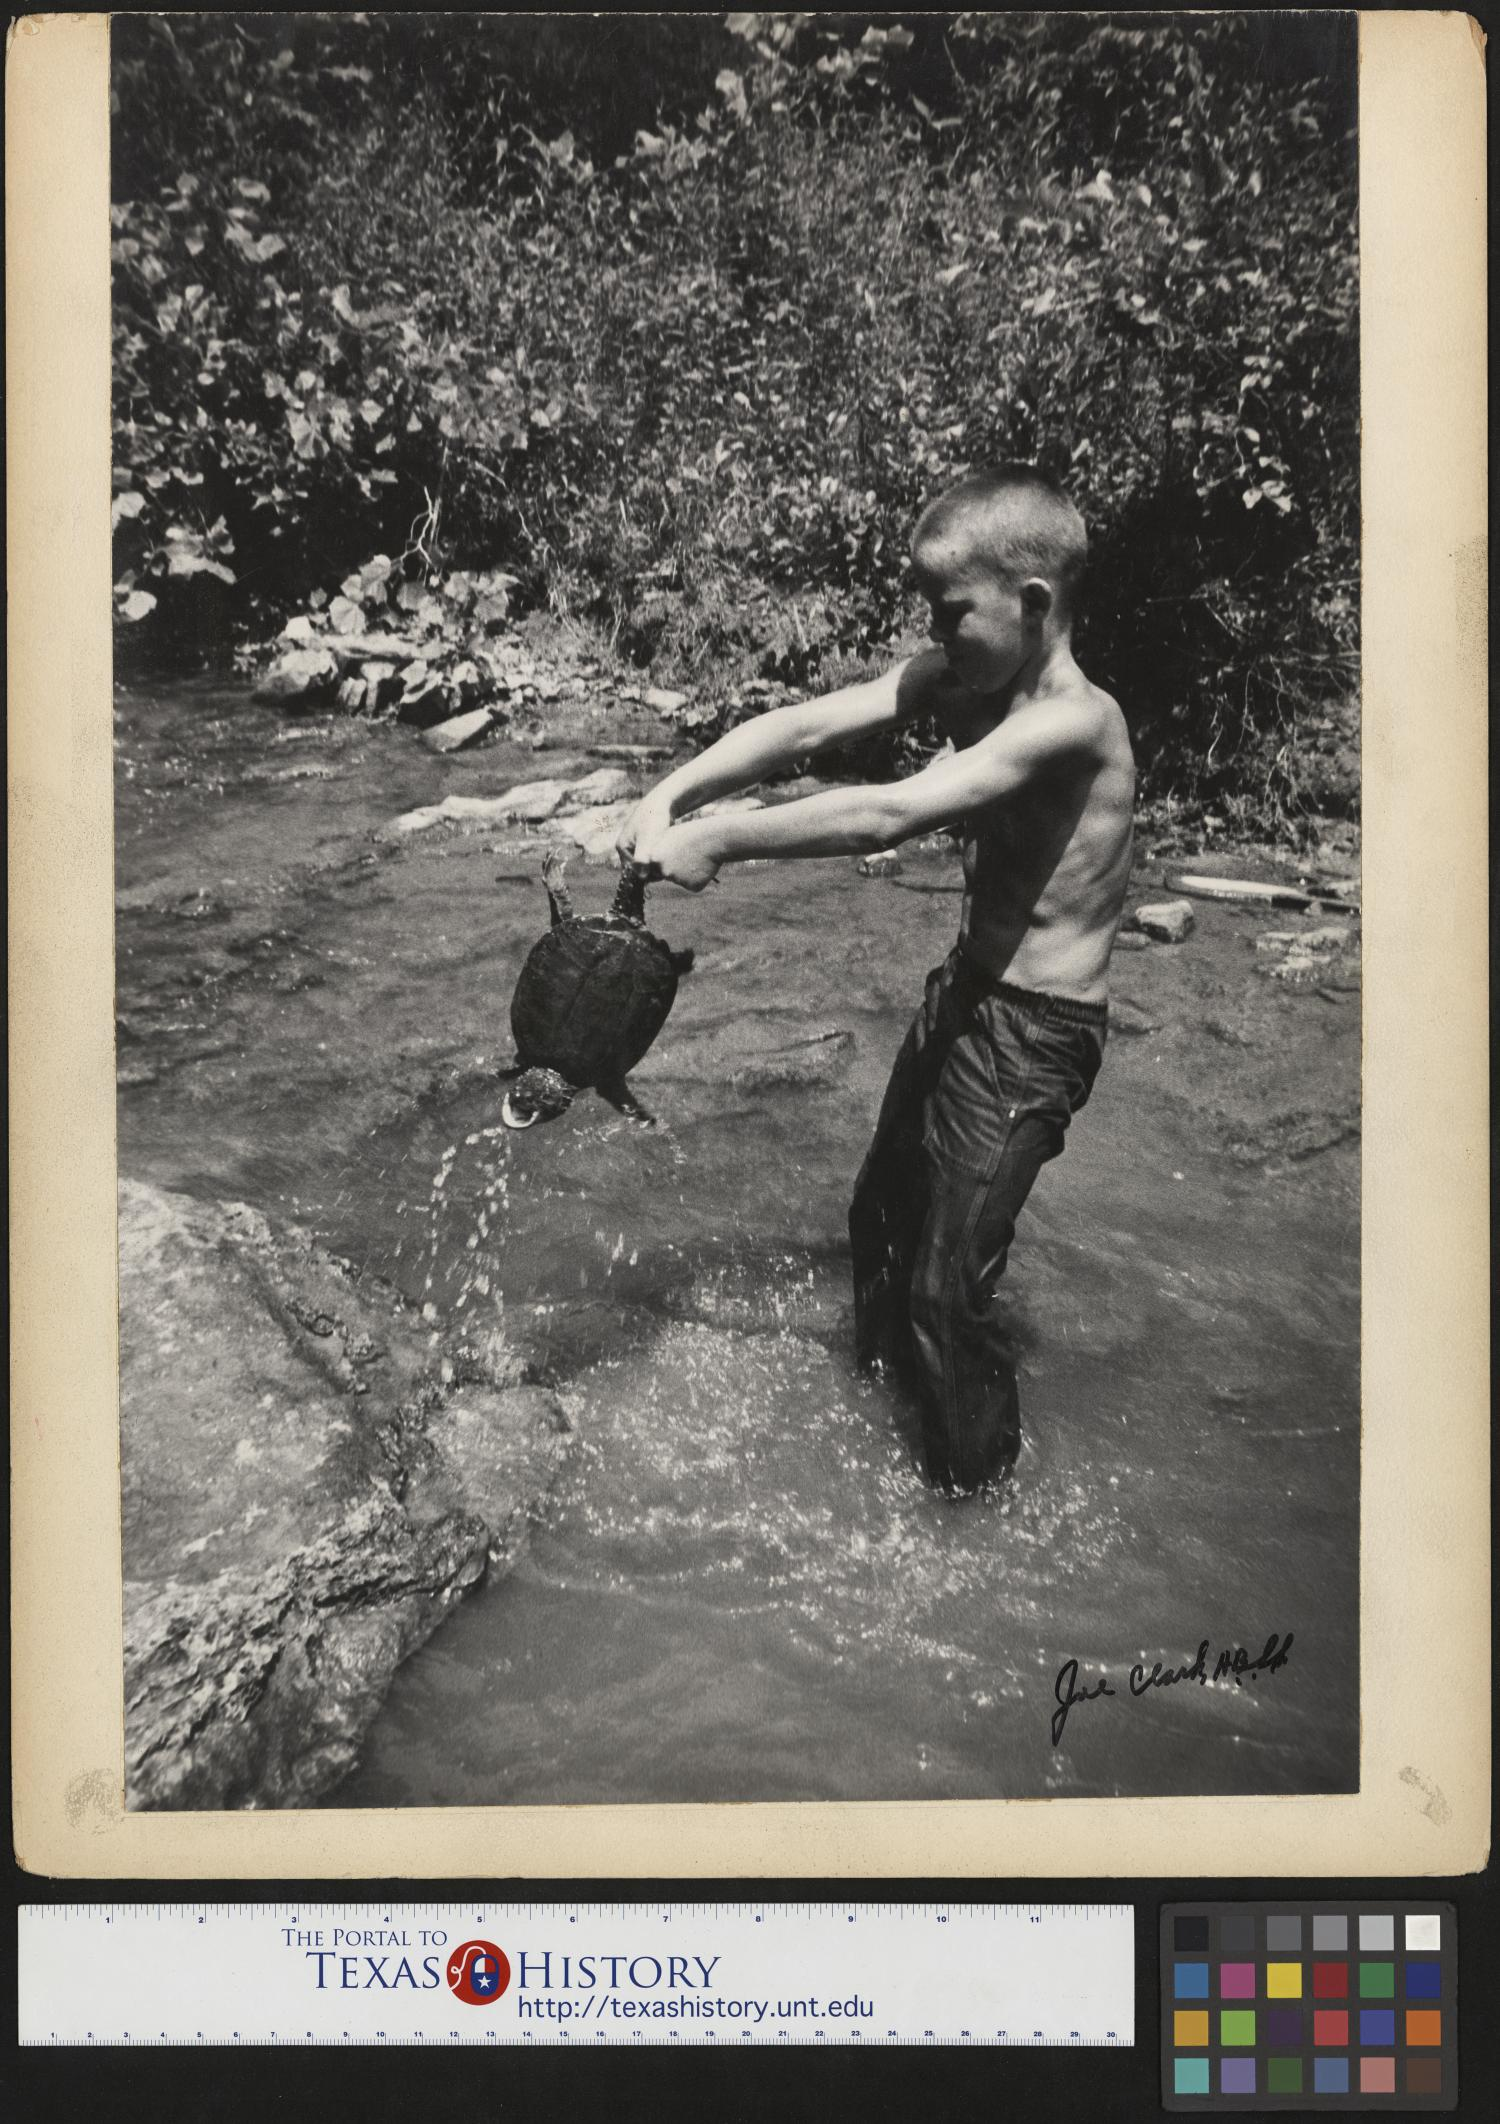 [Jimmy Powell Catches a Snapping Turtle], Photograph of Jimmy Powell catching a snapping turtle with his bare hands in Keg Branch, a creek, in Cumberland Gap, Tennessee. He wears pants, but no shirt, and he holds the turtle by the tail. Rocks and foliage line the sides of the creek. Photo by: Joe Clark, HBSS. Signed by: Joe Clark, HBSS Clark PhotoFile: 9276-0002-19,